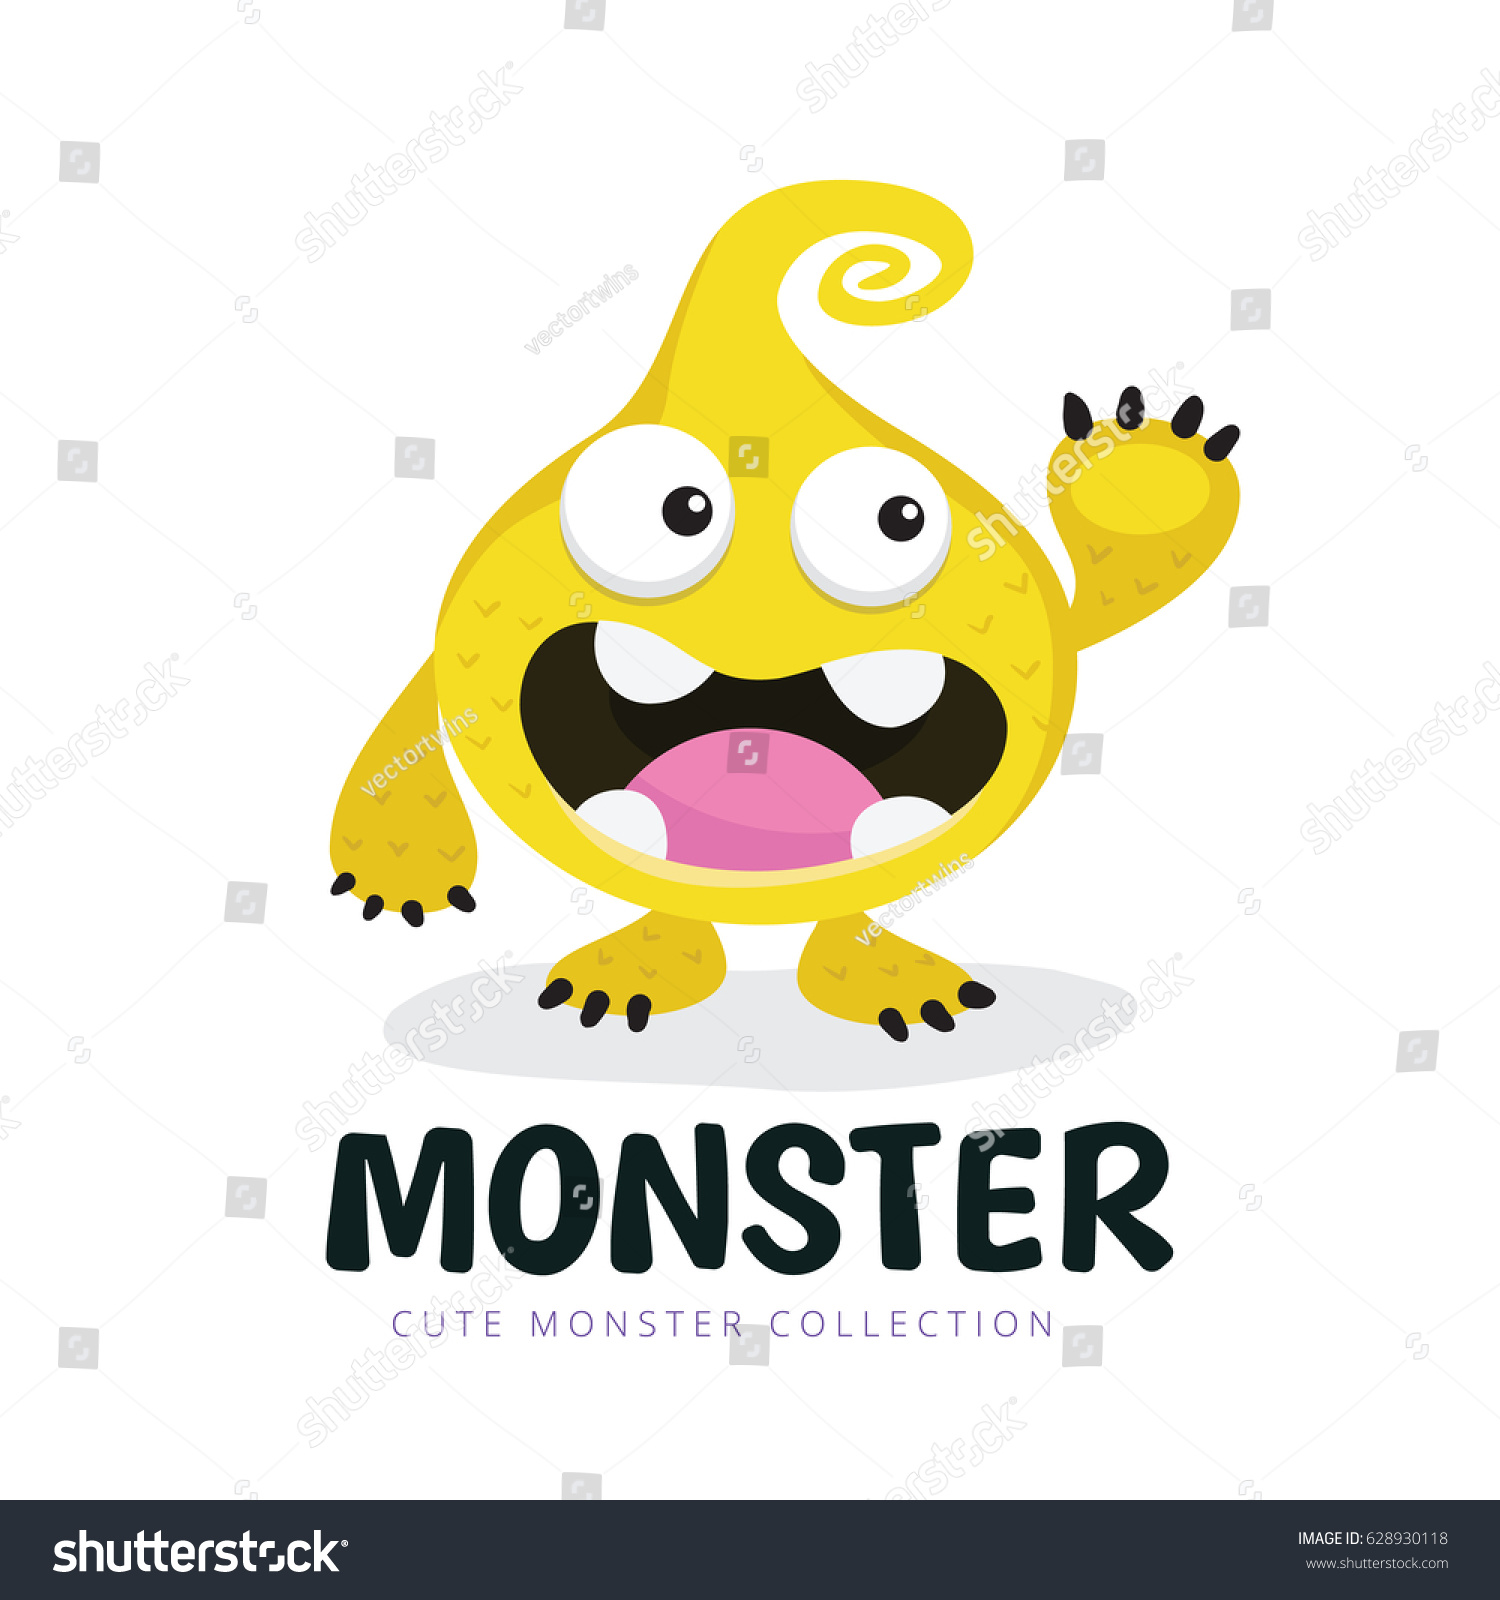 cute monster logo template stock vector 628930118 shutterstock. Resume Example. Resume CV Cover Letter